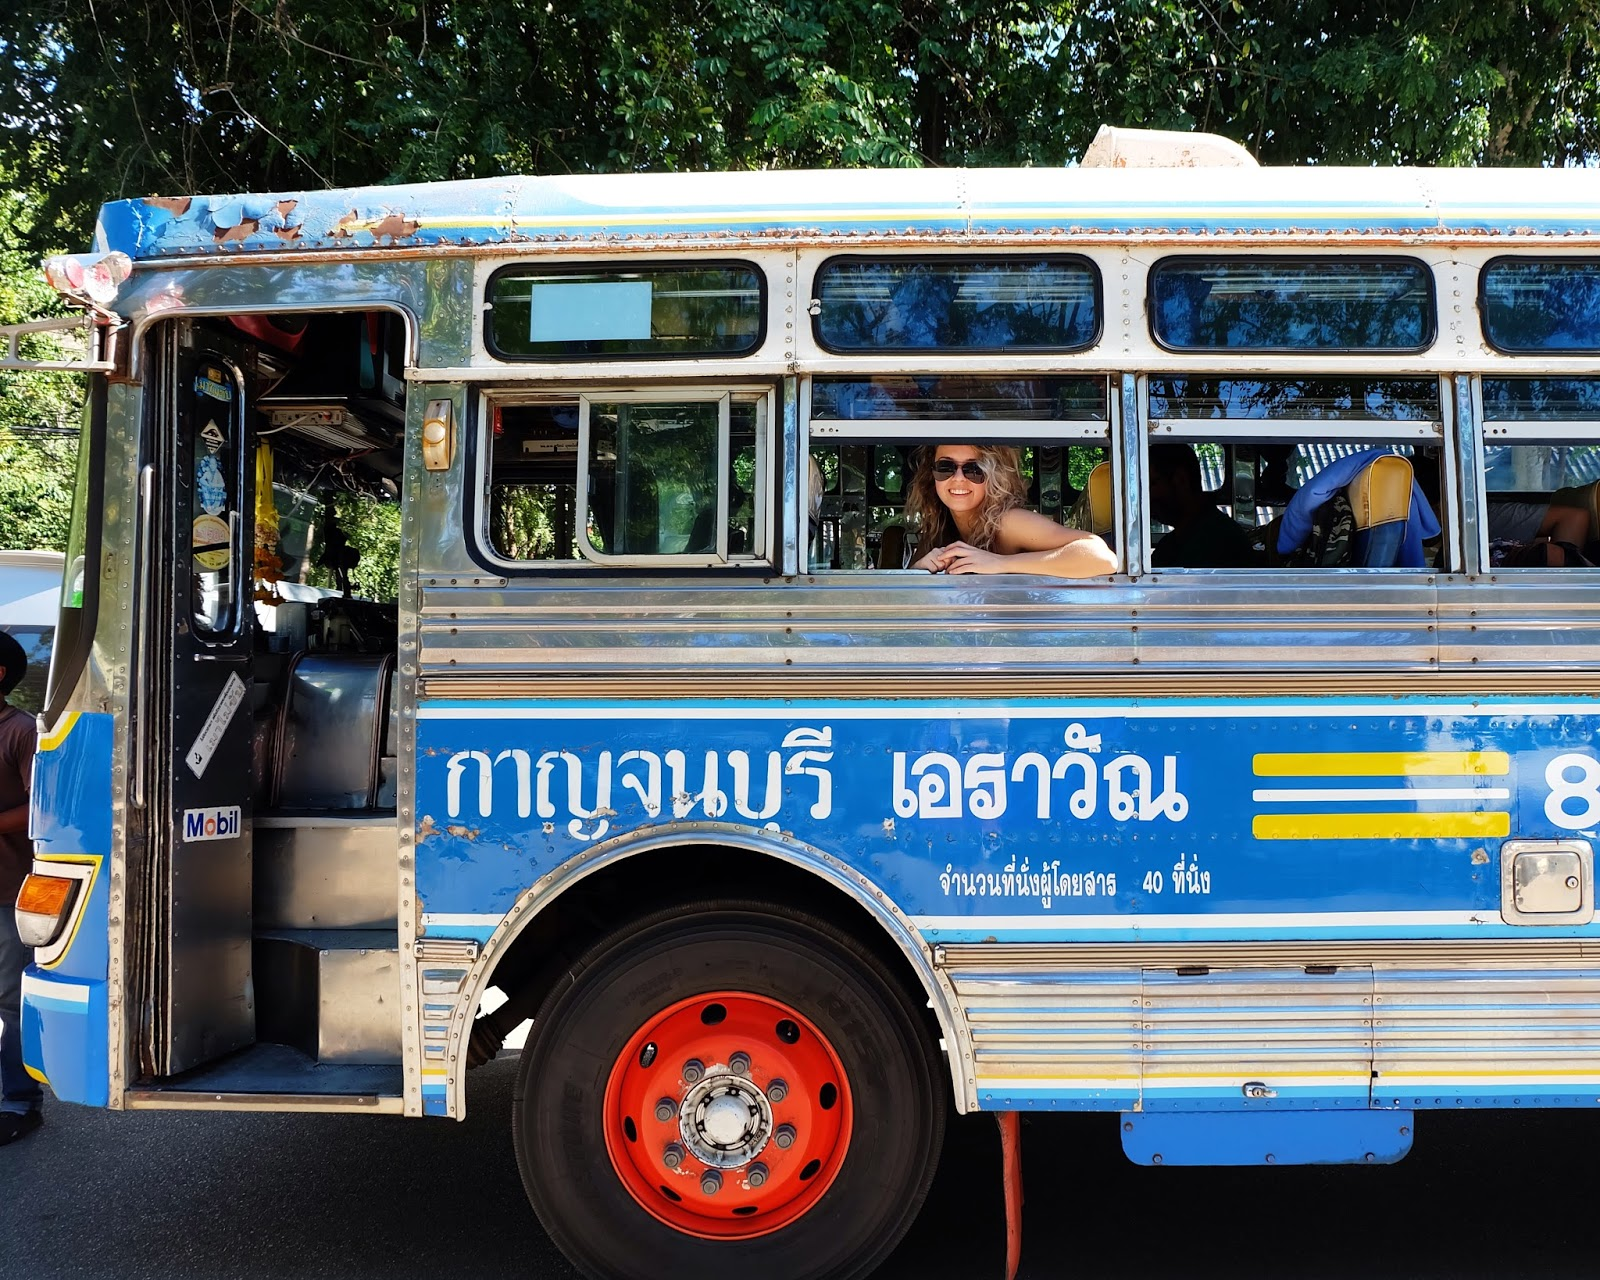 Local bus to Erawan Falls